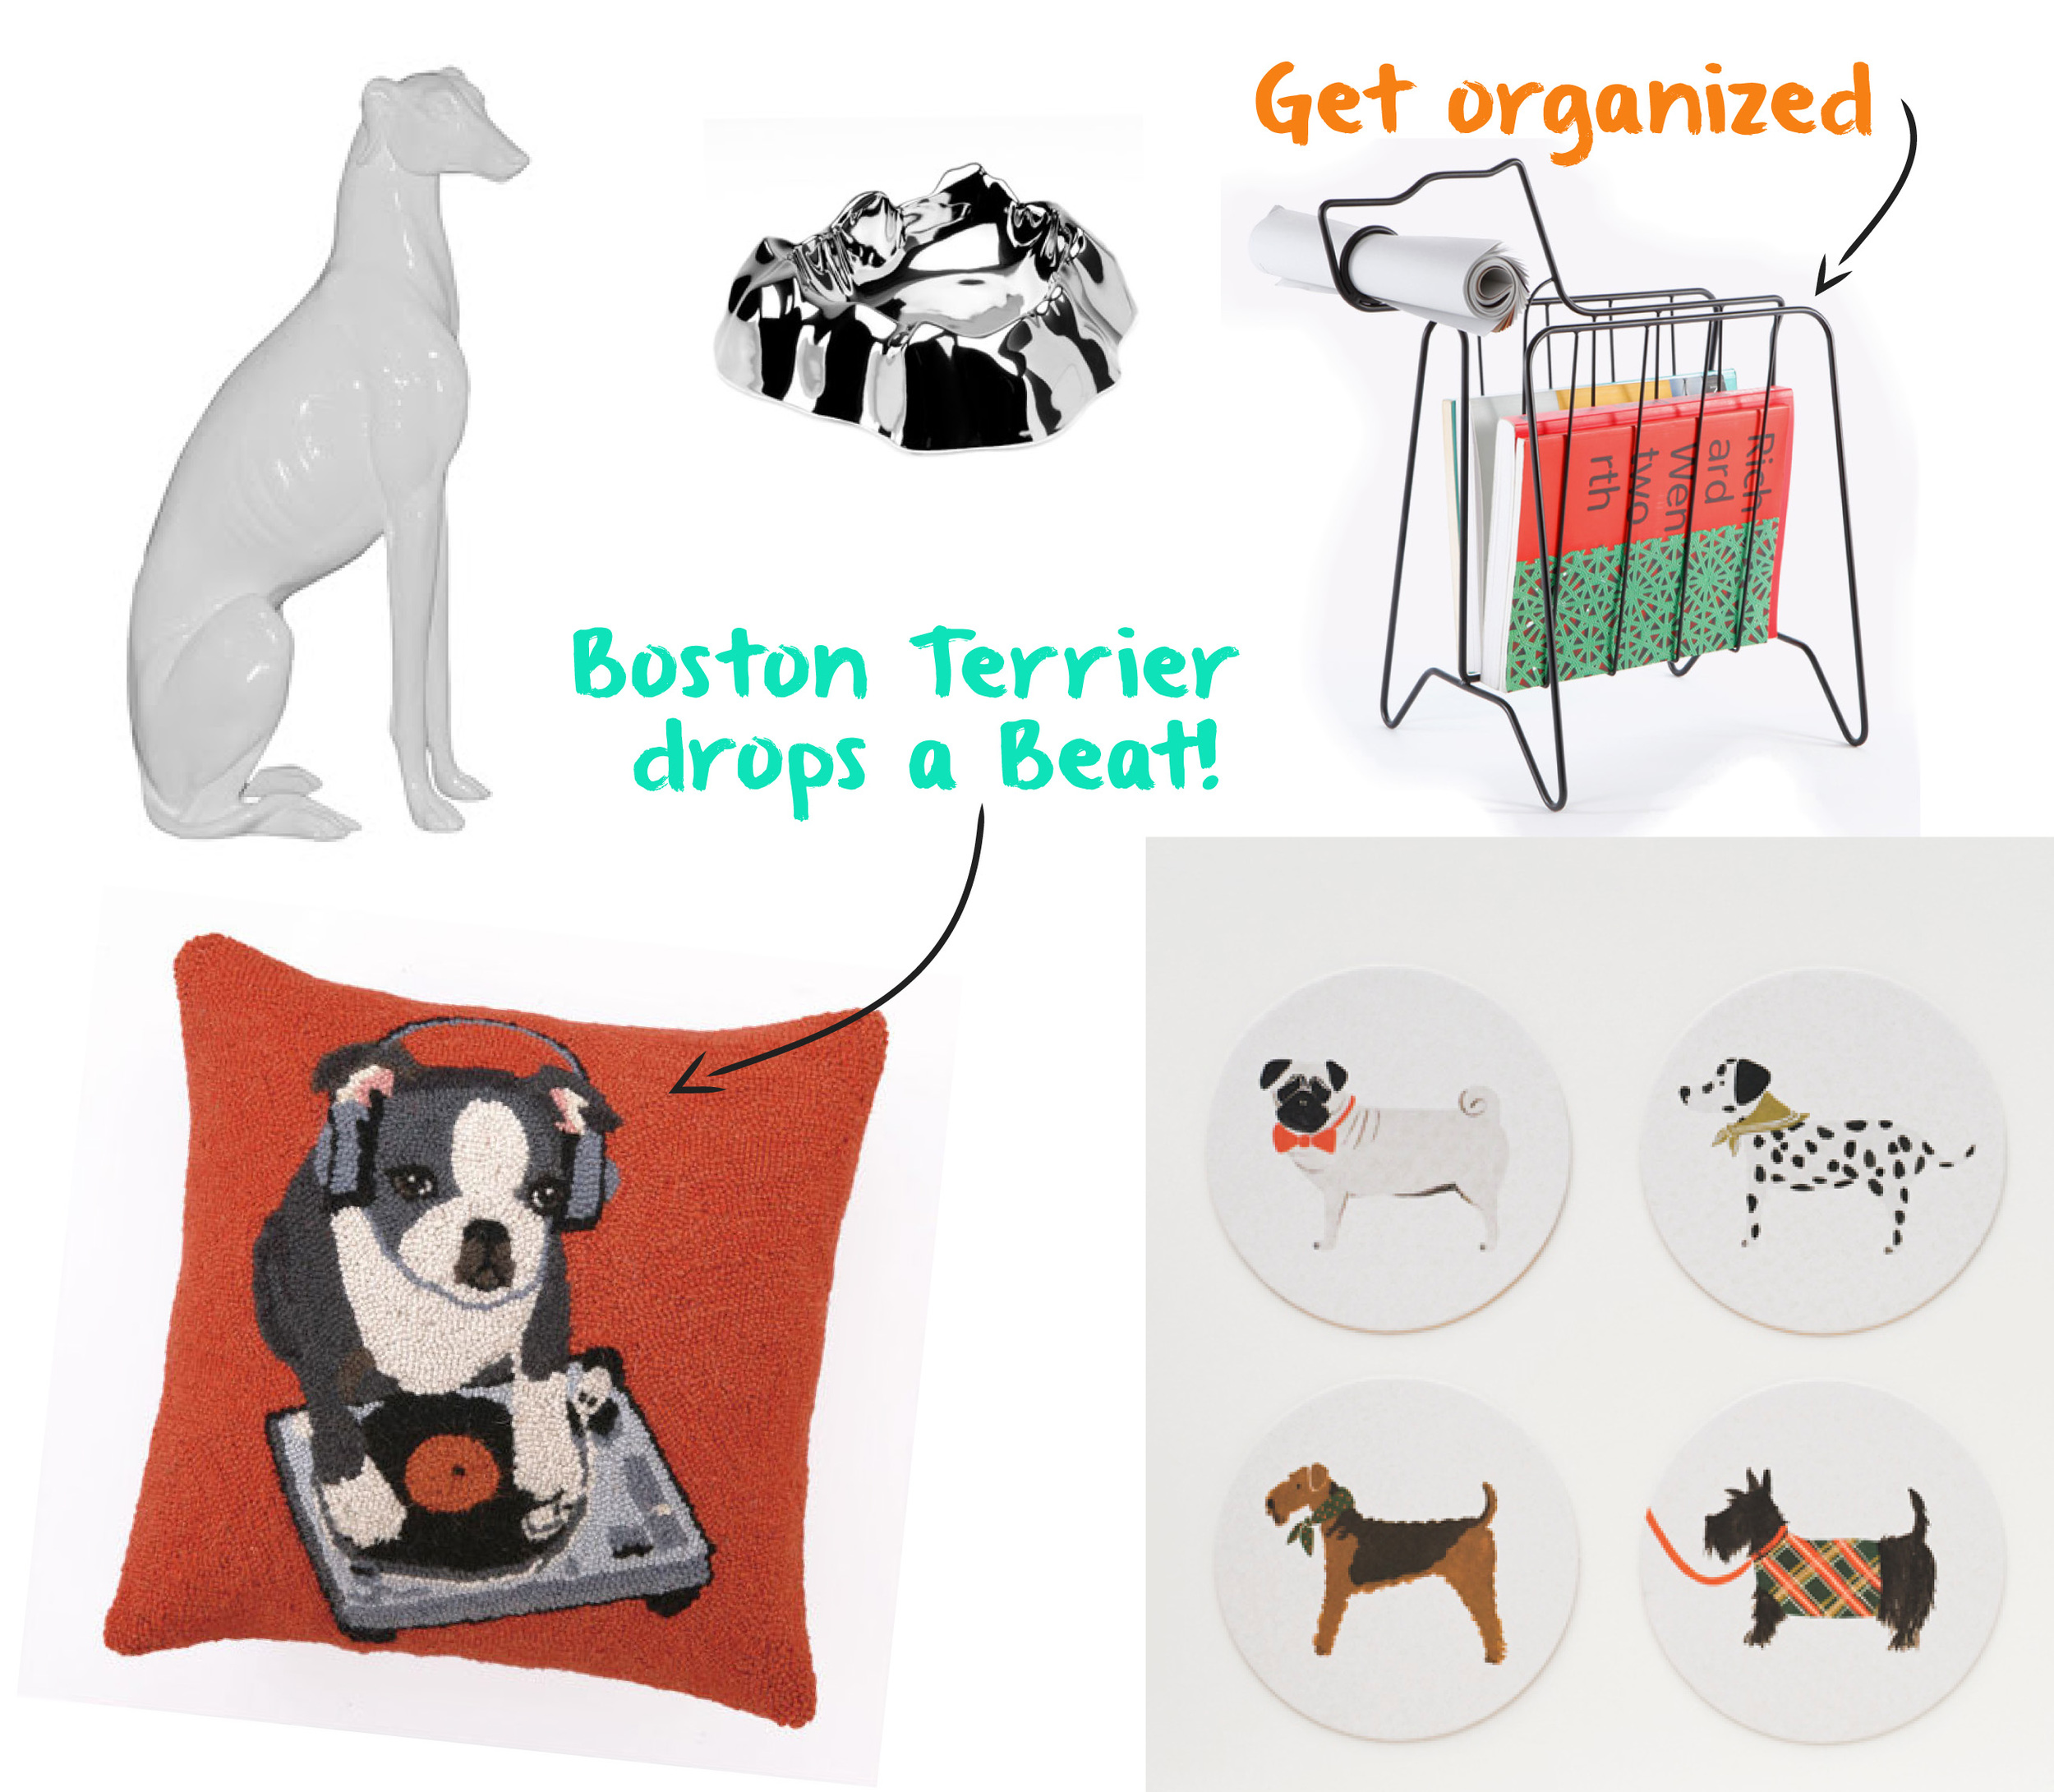 Greyhound Statue  from  Modern Chic Home ,  Rock Bowl  by   Brandon War    ren  , Companion Rack  from   Gavin Coyle  , Boston Terrier Throw Pillow by   Peking Handicraft  ,  Canine Coaster Set  from   Rifle Paper Co.